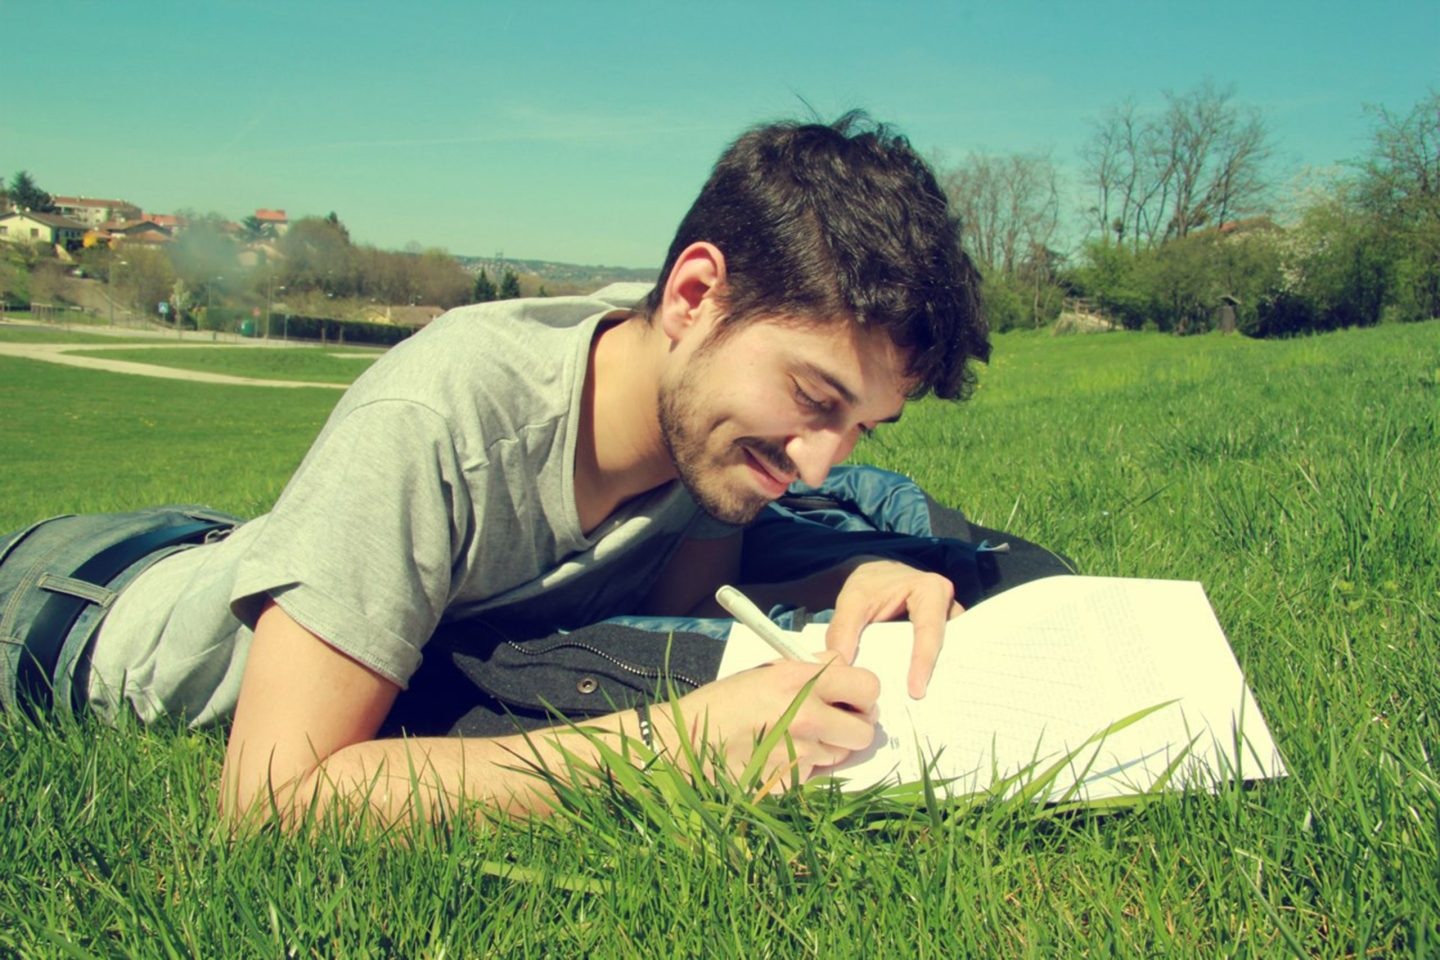 Smiling man writing on paper in a grassy field